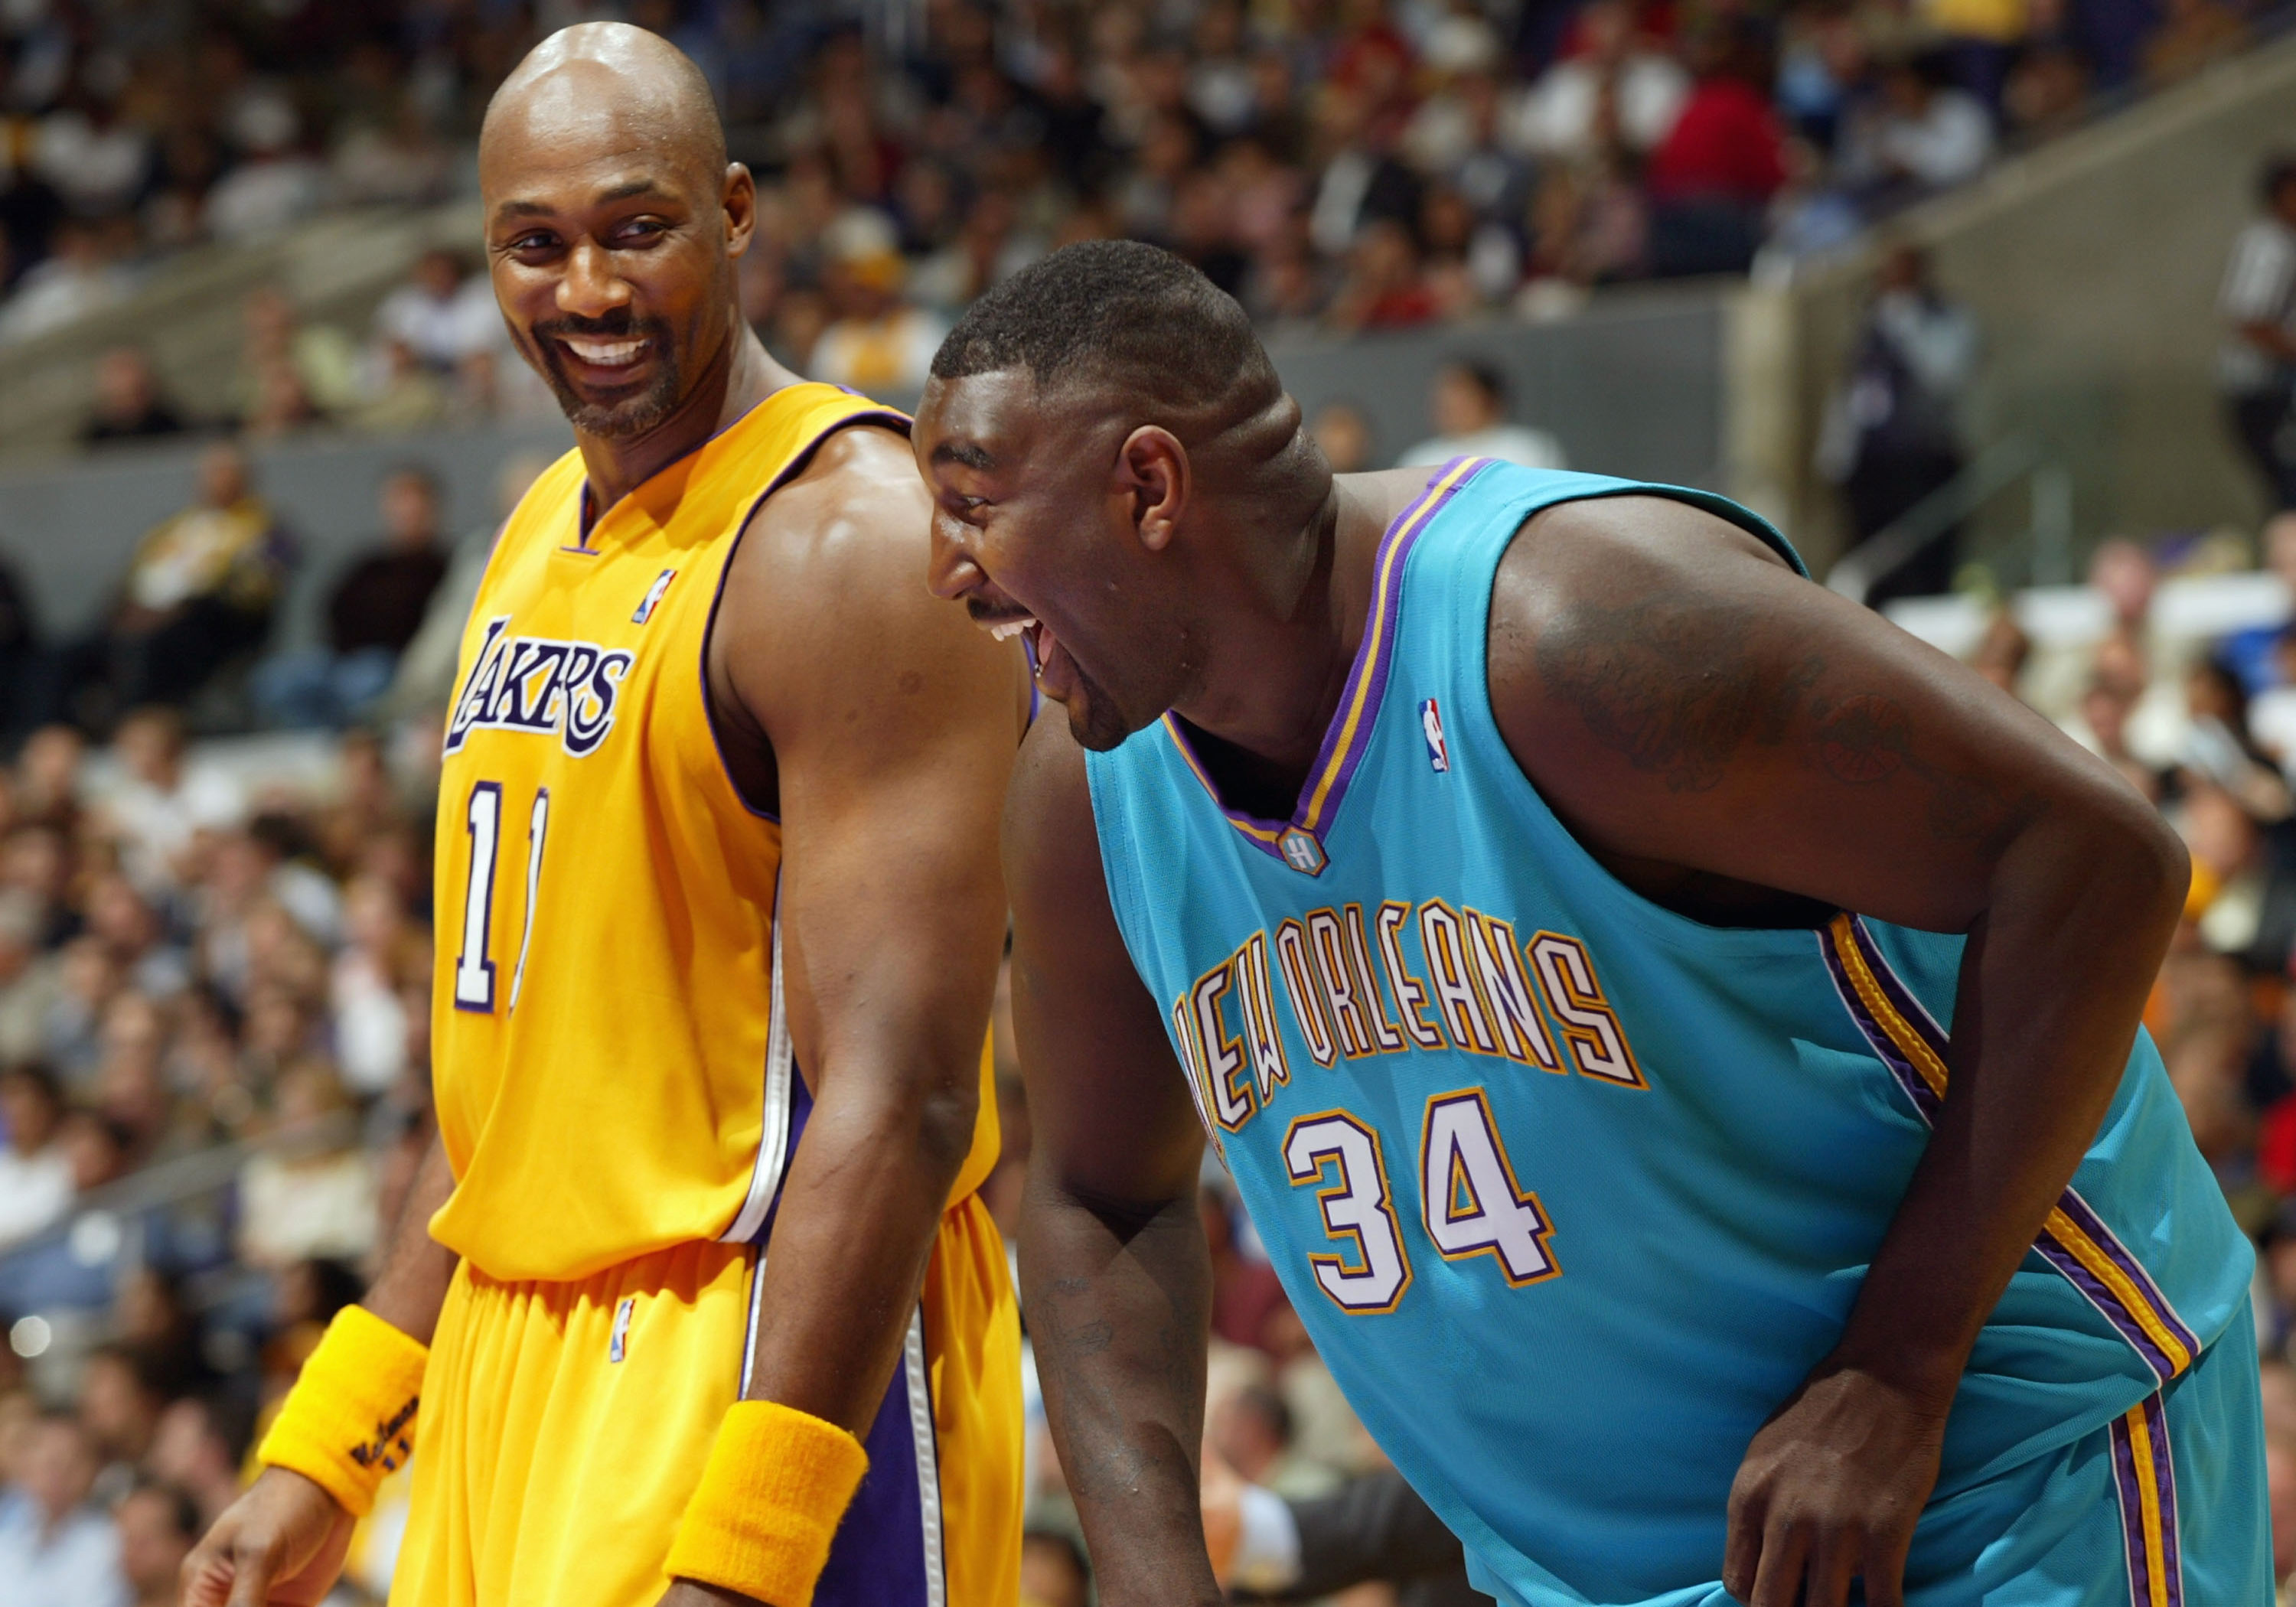 LOS ANGELES - MARCH 30:  Karl Malone #11 of the Los Angeles Lakers shares a laugh with Robert Traylor #34 of the New Orleans Hornets during the game at Staples Center on March 30, 2004 in Los Angeles, California.  NOTE TO USER: User expressly acknowledges